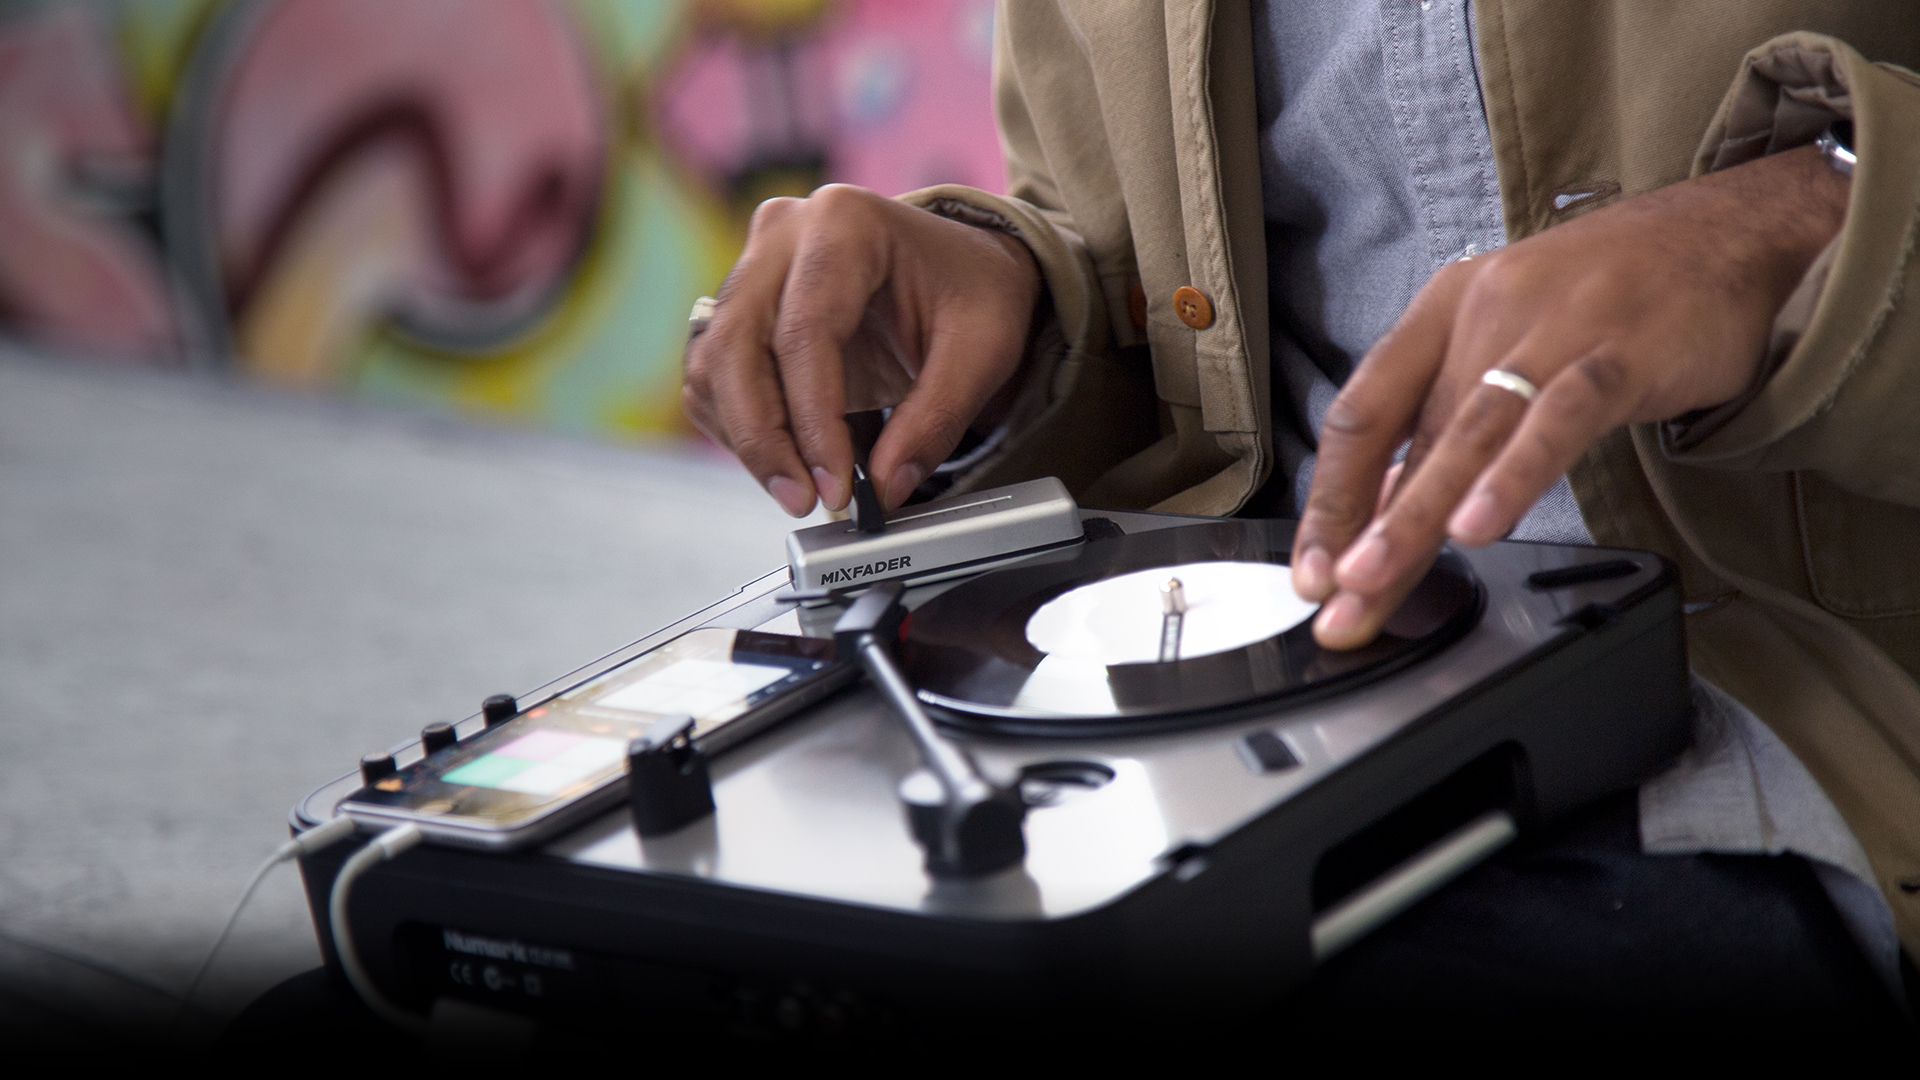 Mixfader | How to use Mixfader with your turntables